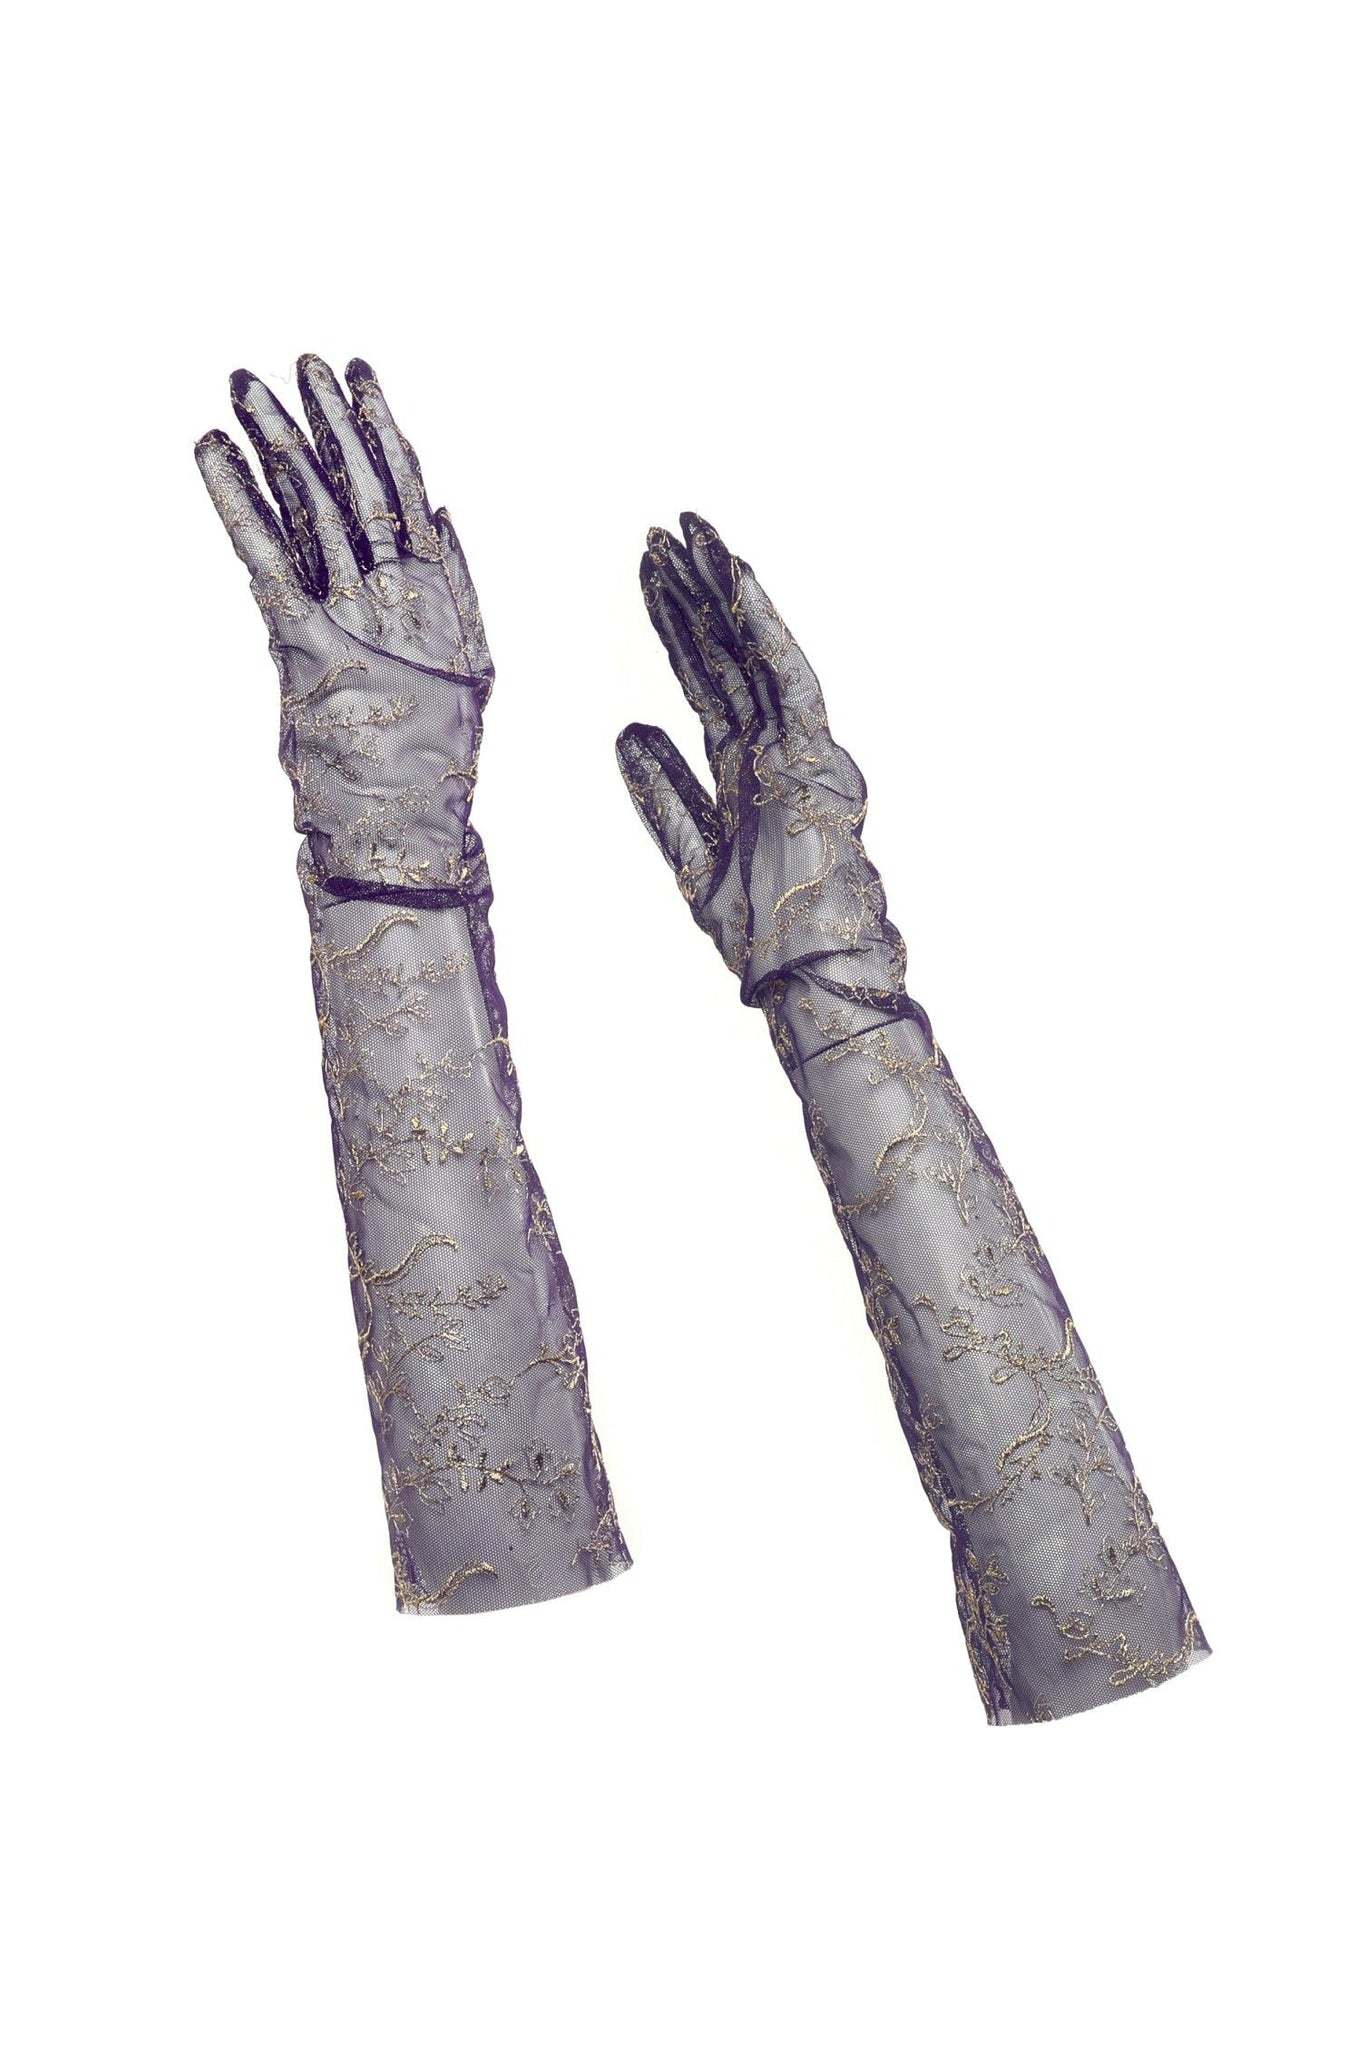 Mary Beale gloves